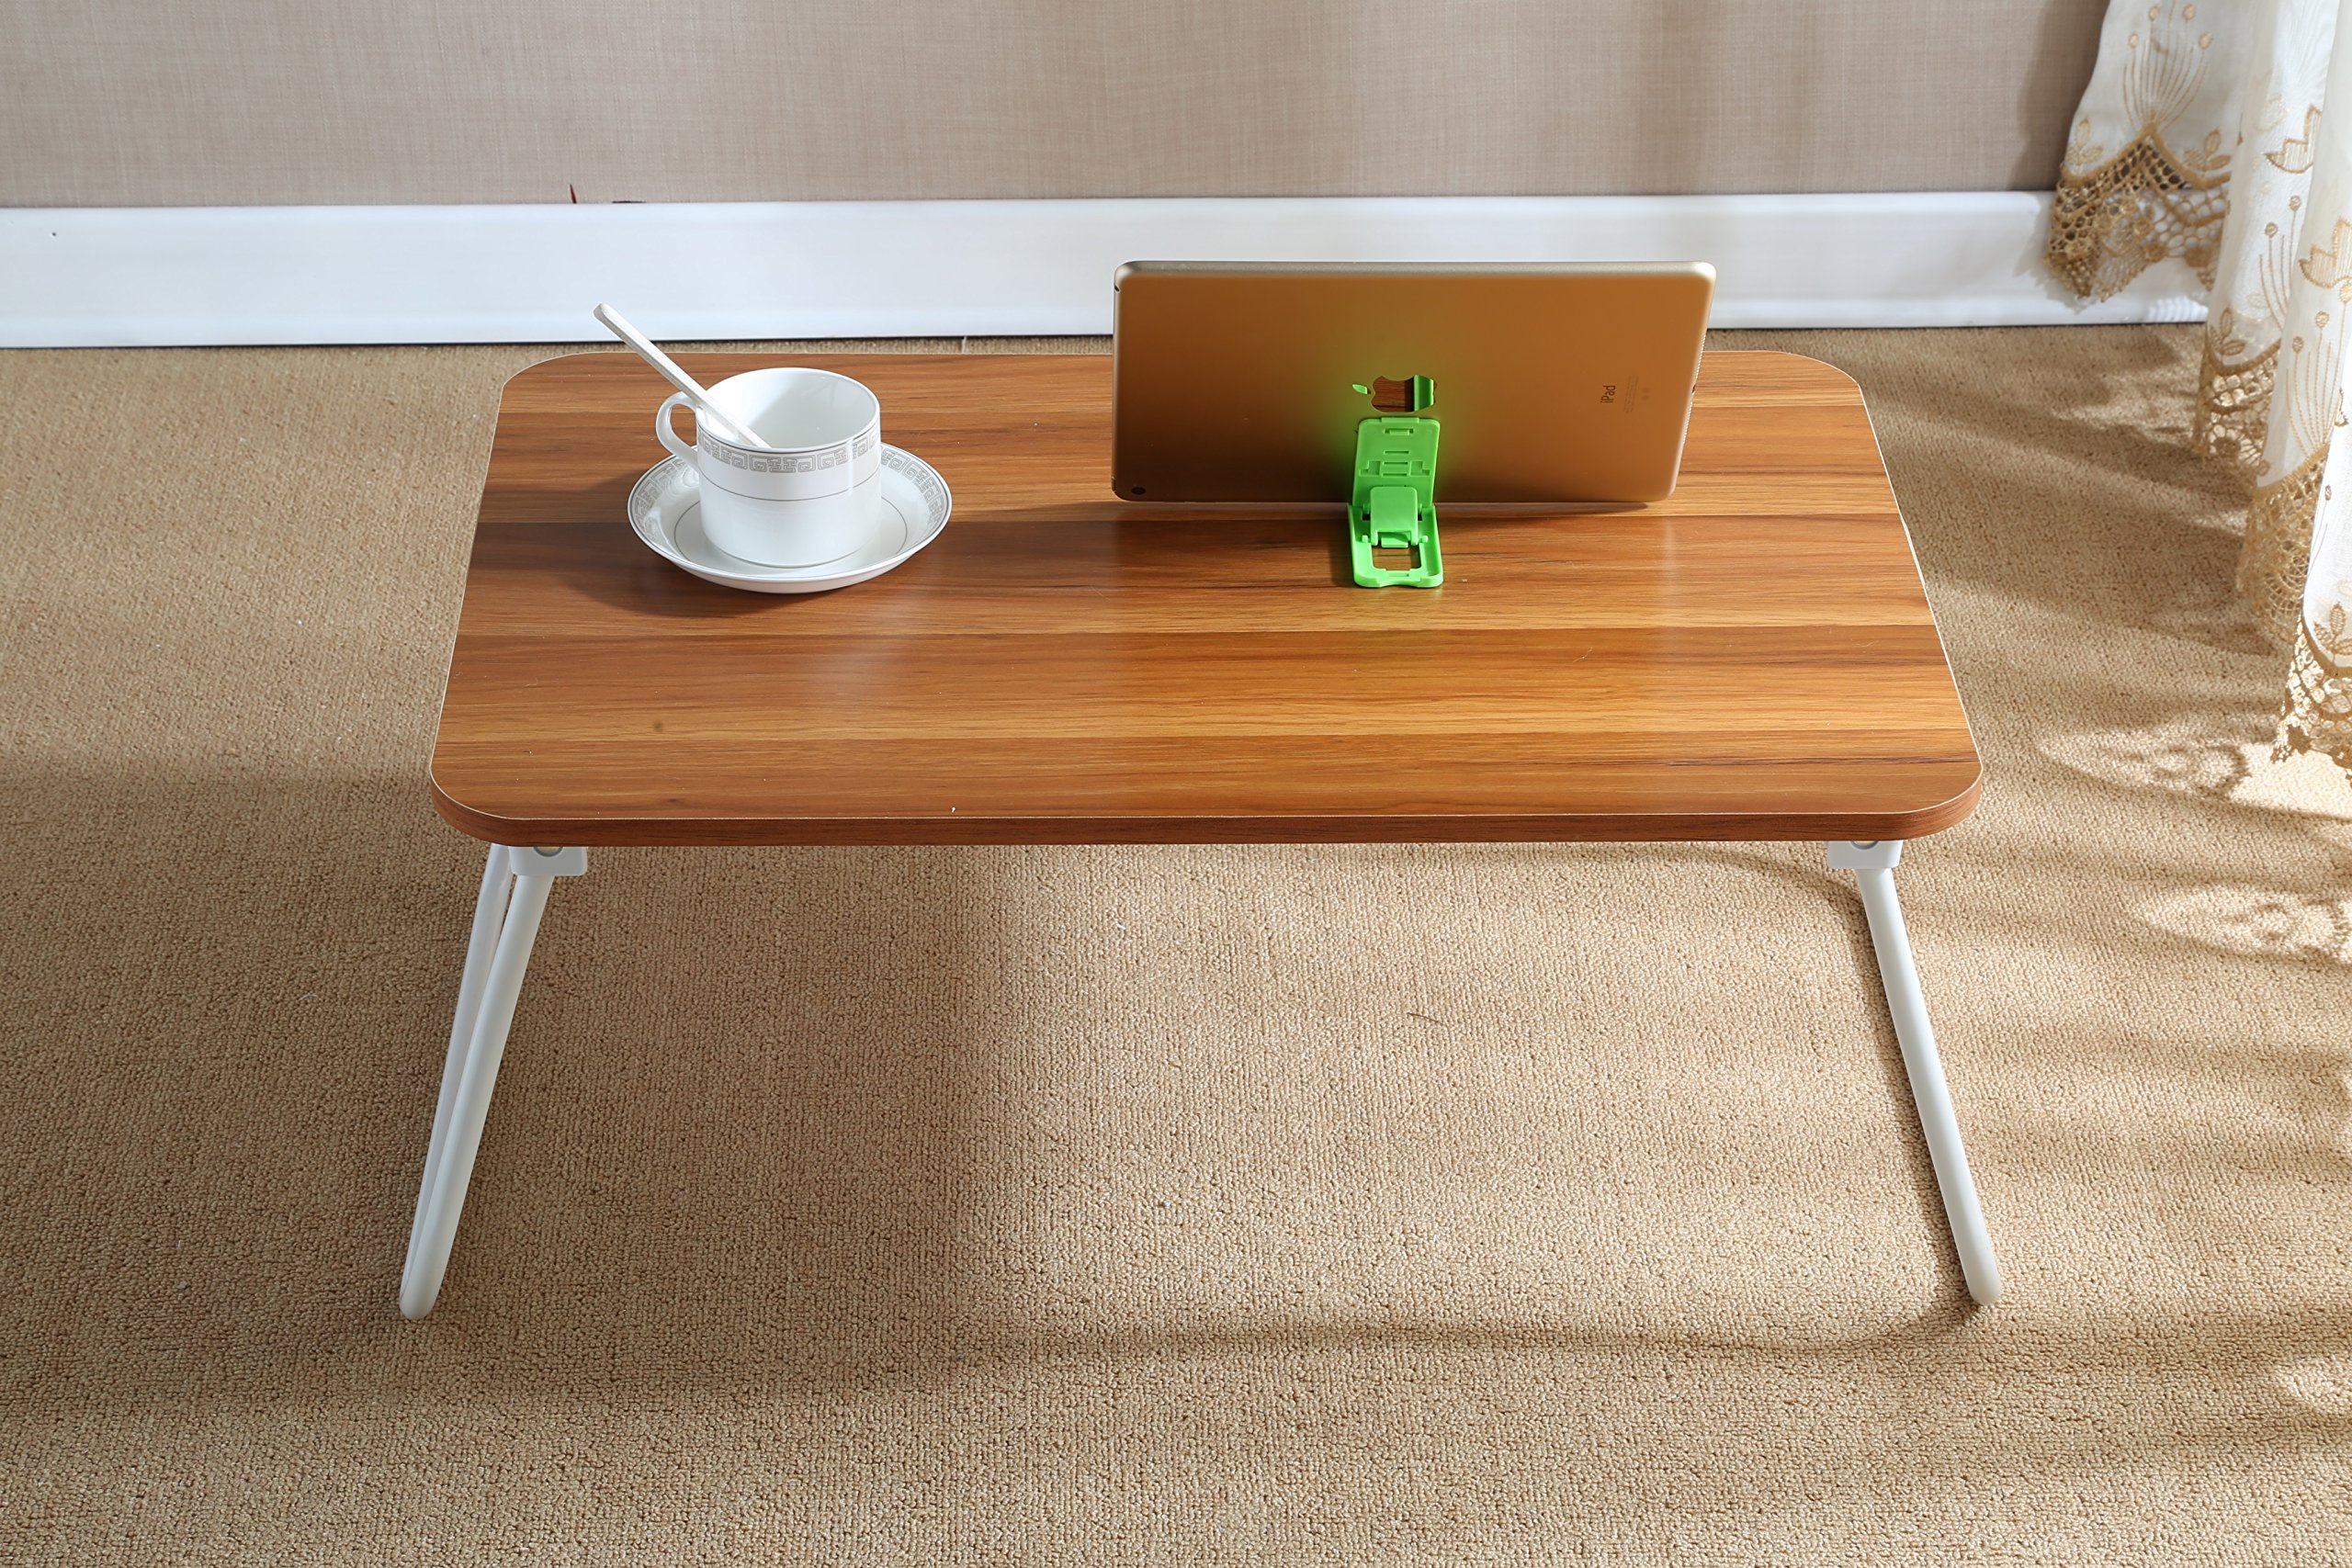 """Homebi Lap Desk Tray Table Laptop Stand Portable Bed Desk Breakfast Tray for Bed Couch and Sofa with MDF Top Board and Foldable Metal Legs (11.20""""H, Walnut)"""